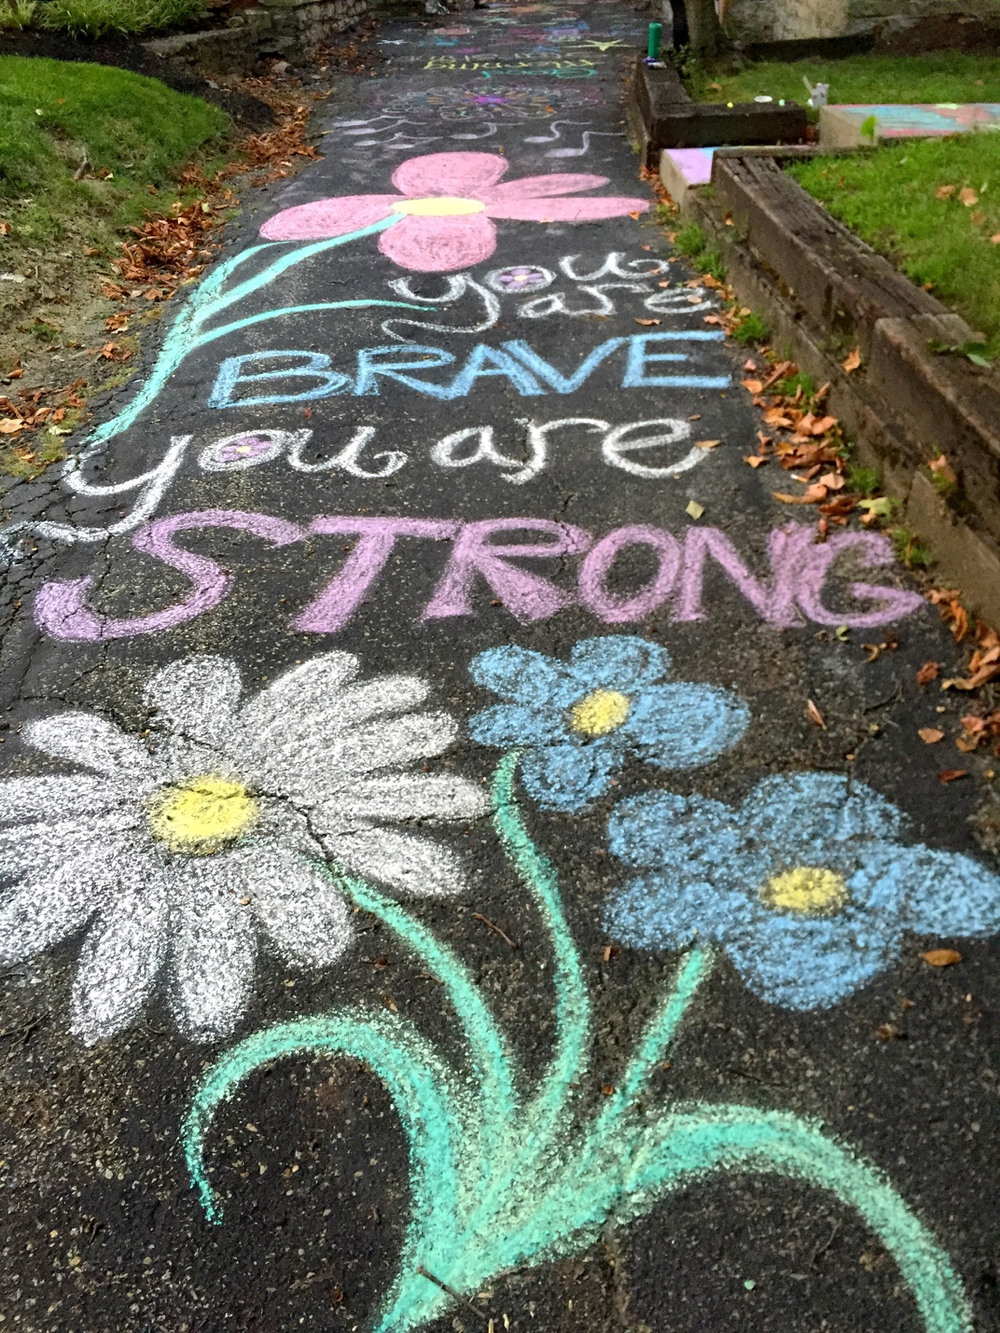 Pro-choice feminists decorated the sidewalks outside of Founder's Women's Health Center on August 29, 2015. This was the fourth time this volunteer event has taken place.